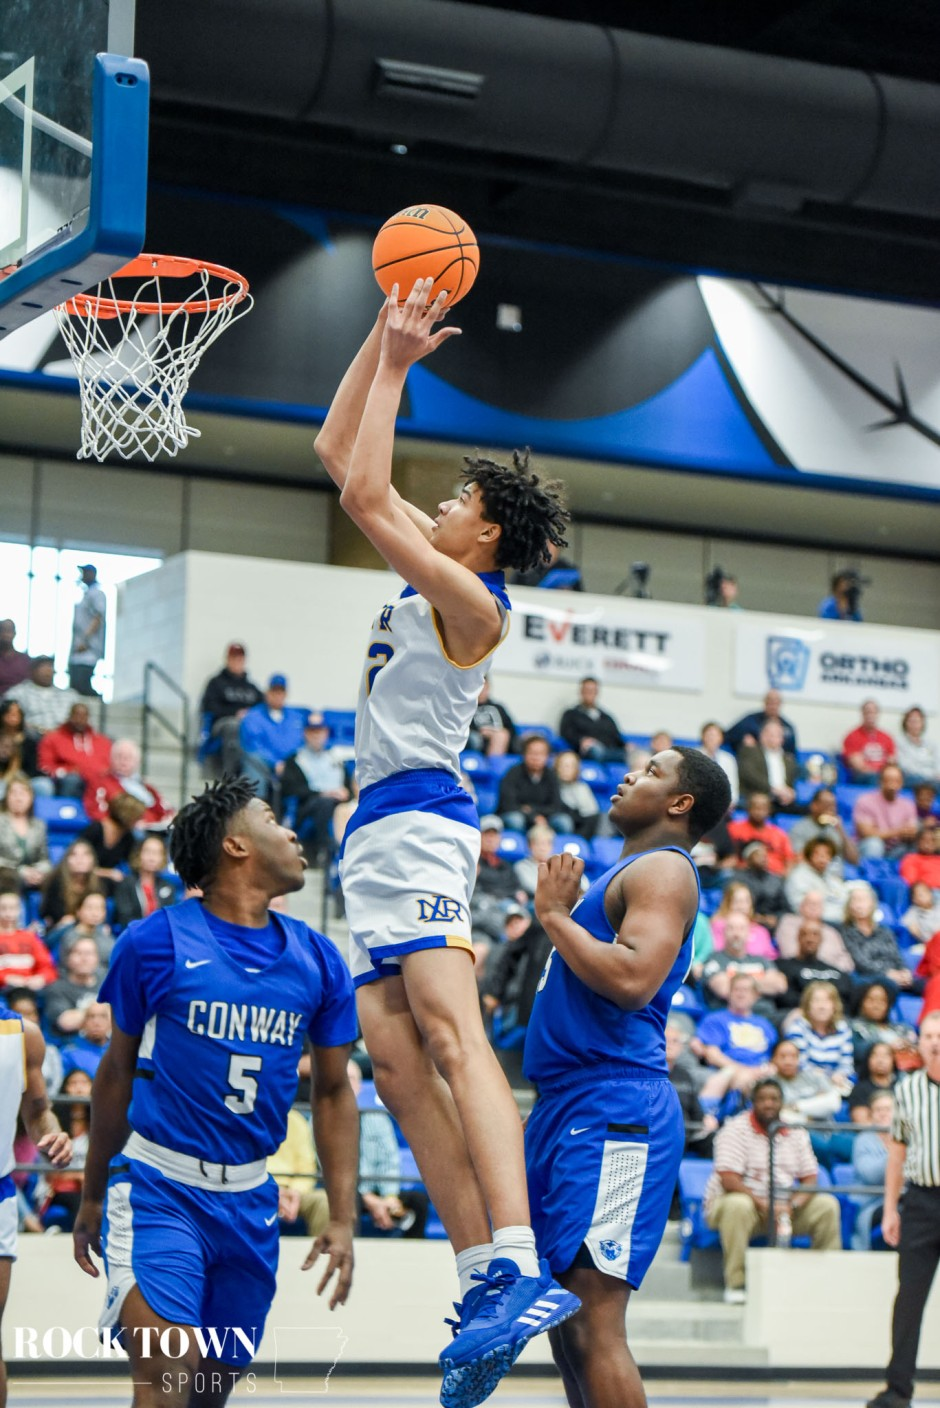 NLR_conway_bball_2020(i)-33